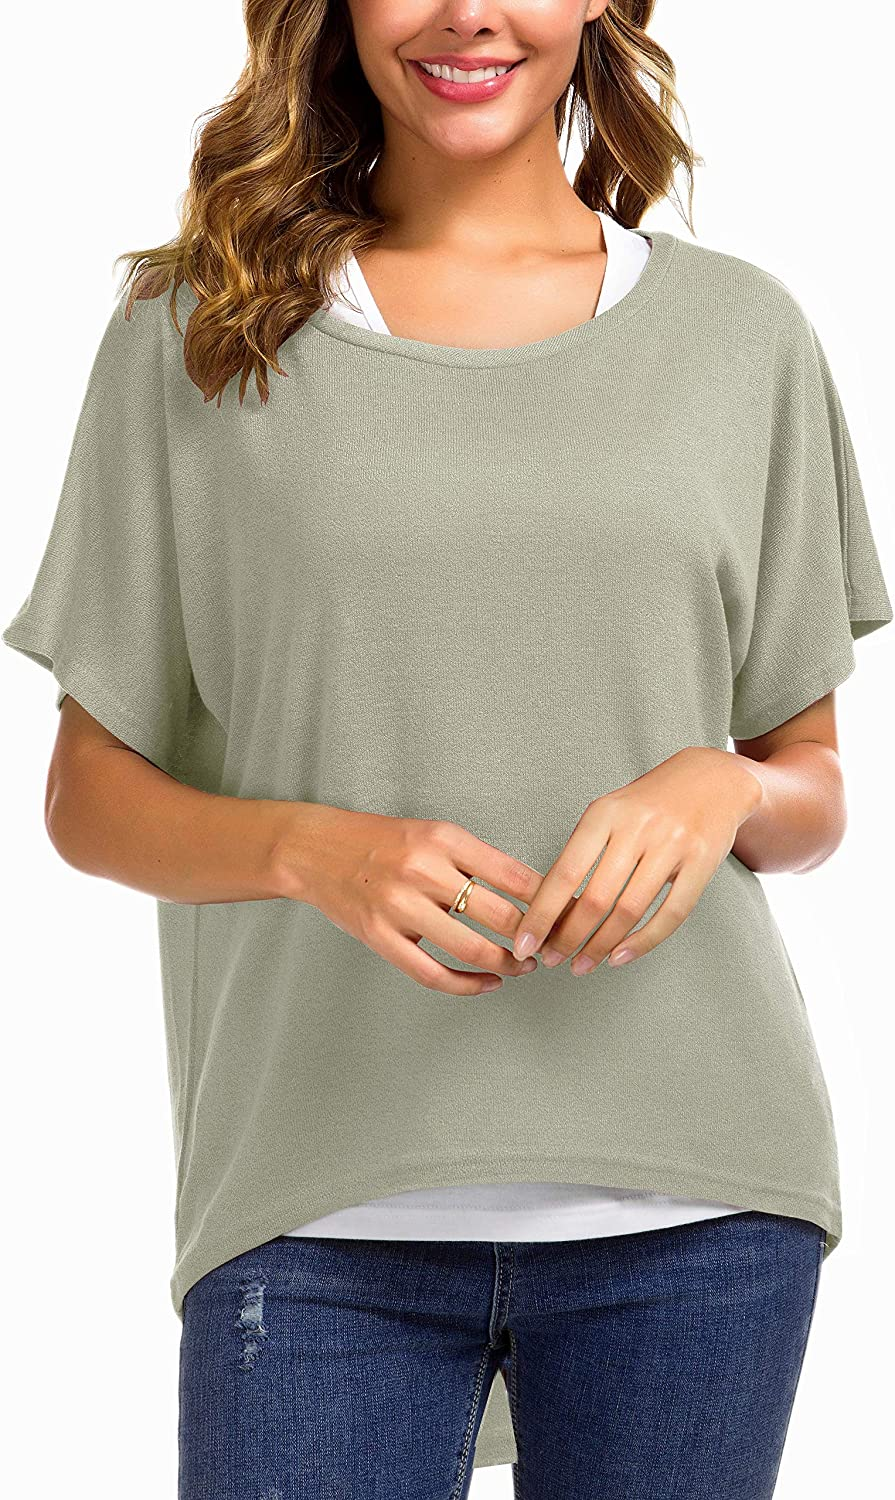 Women's Sweater Casual Oversized Baggy Off-Shoulder Shirts